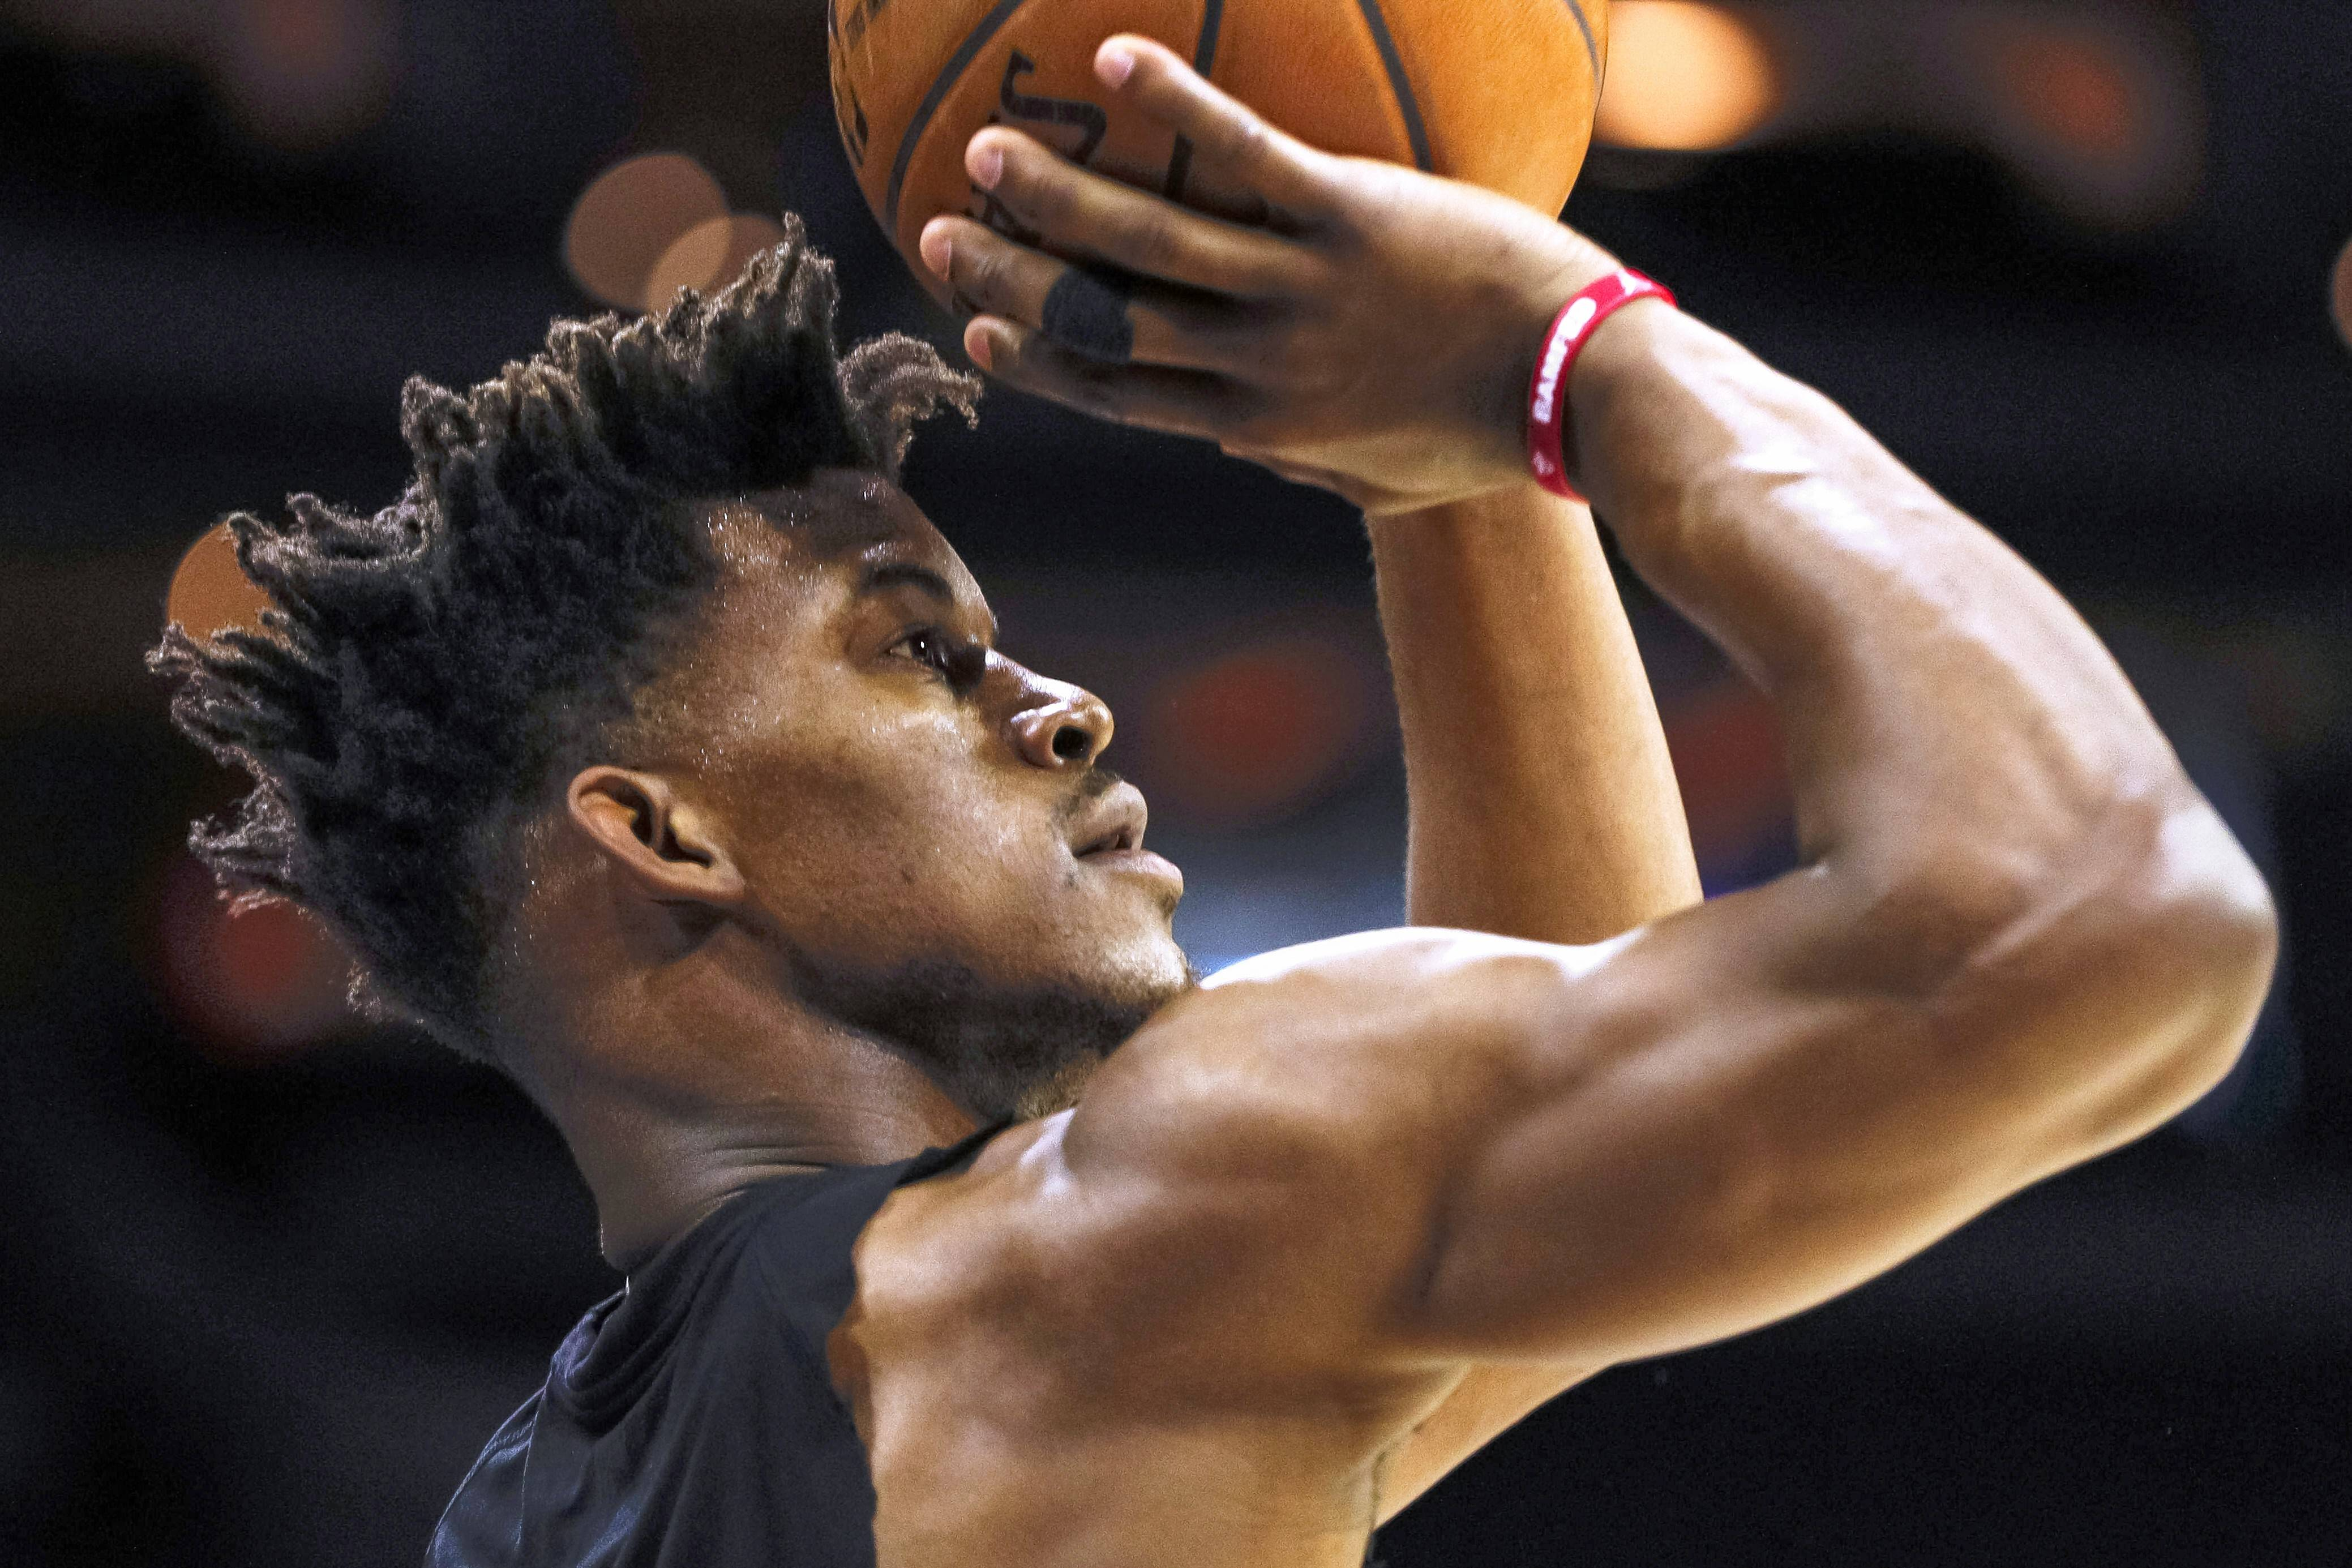 The Bulls pulled a stunning trade on draft night Thursday, sending three-time all-star Jimmy Butler to Minnesota for Zach LaVine, Kris Dunn and the No. 7 pick of the draft